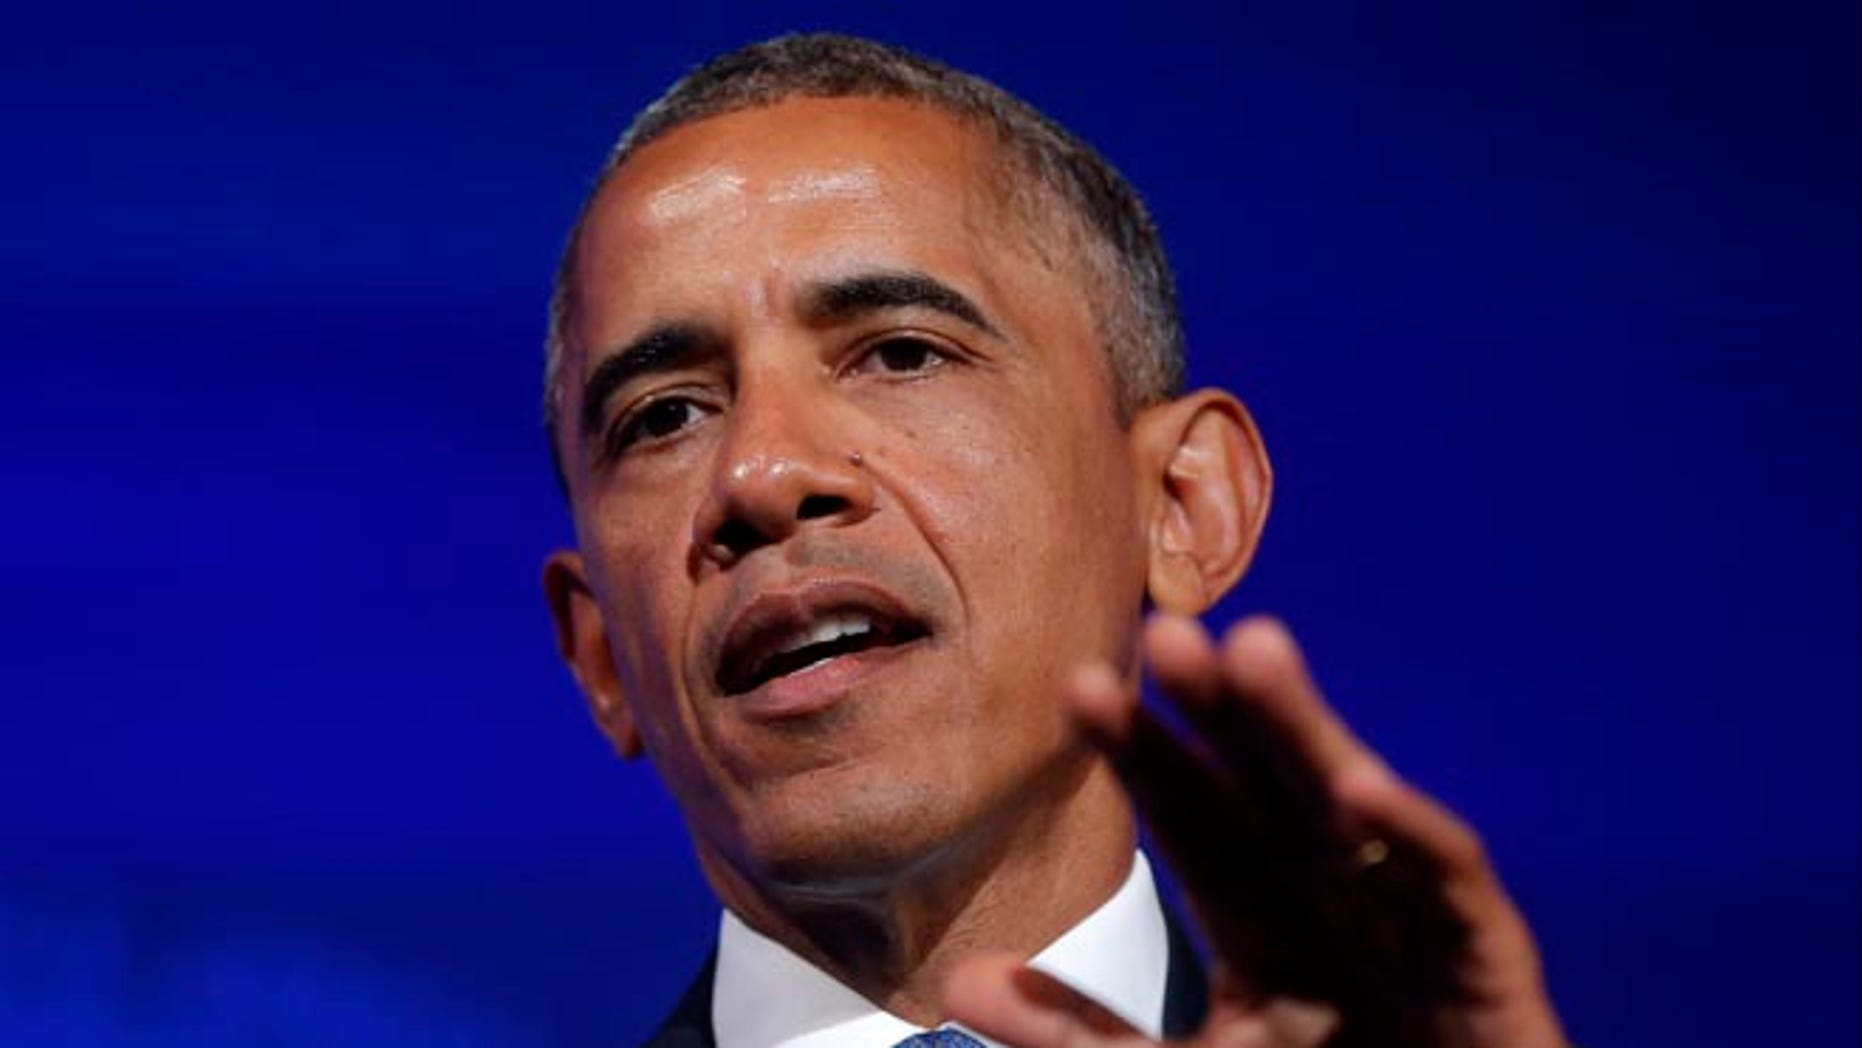 FILE: Aug. 5, 2014; President Obama speaks at the U.S. Africa Business Forum, in Washington, D.C.